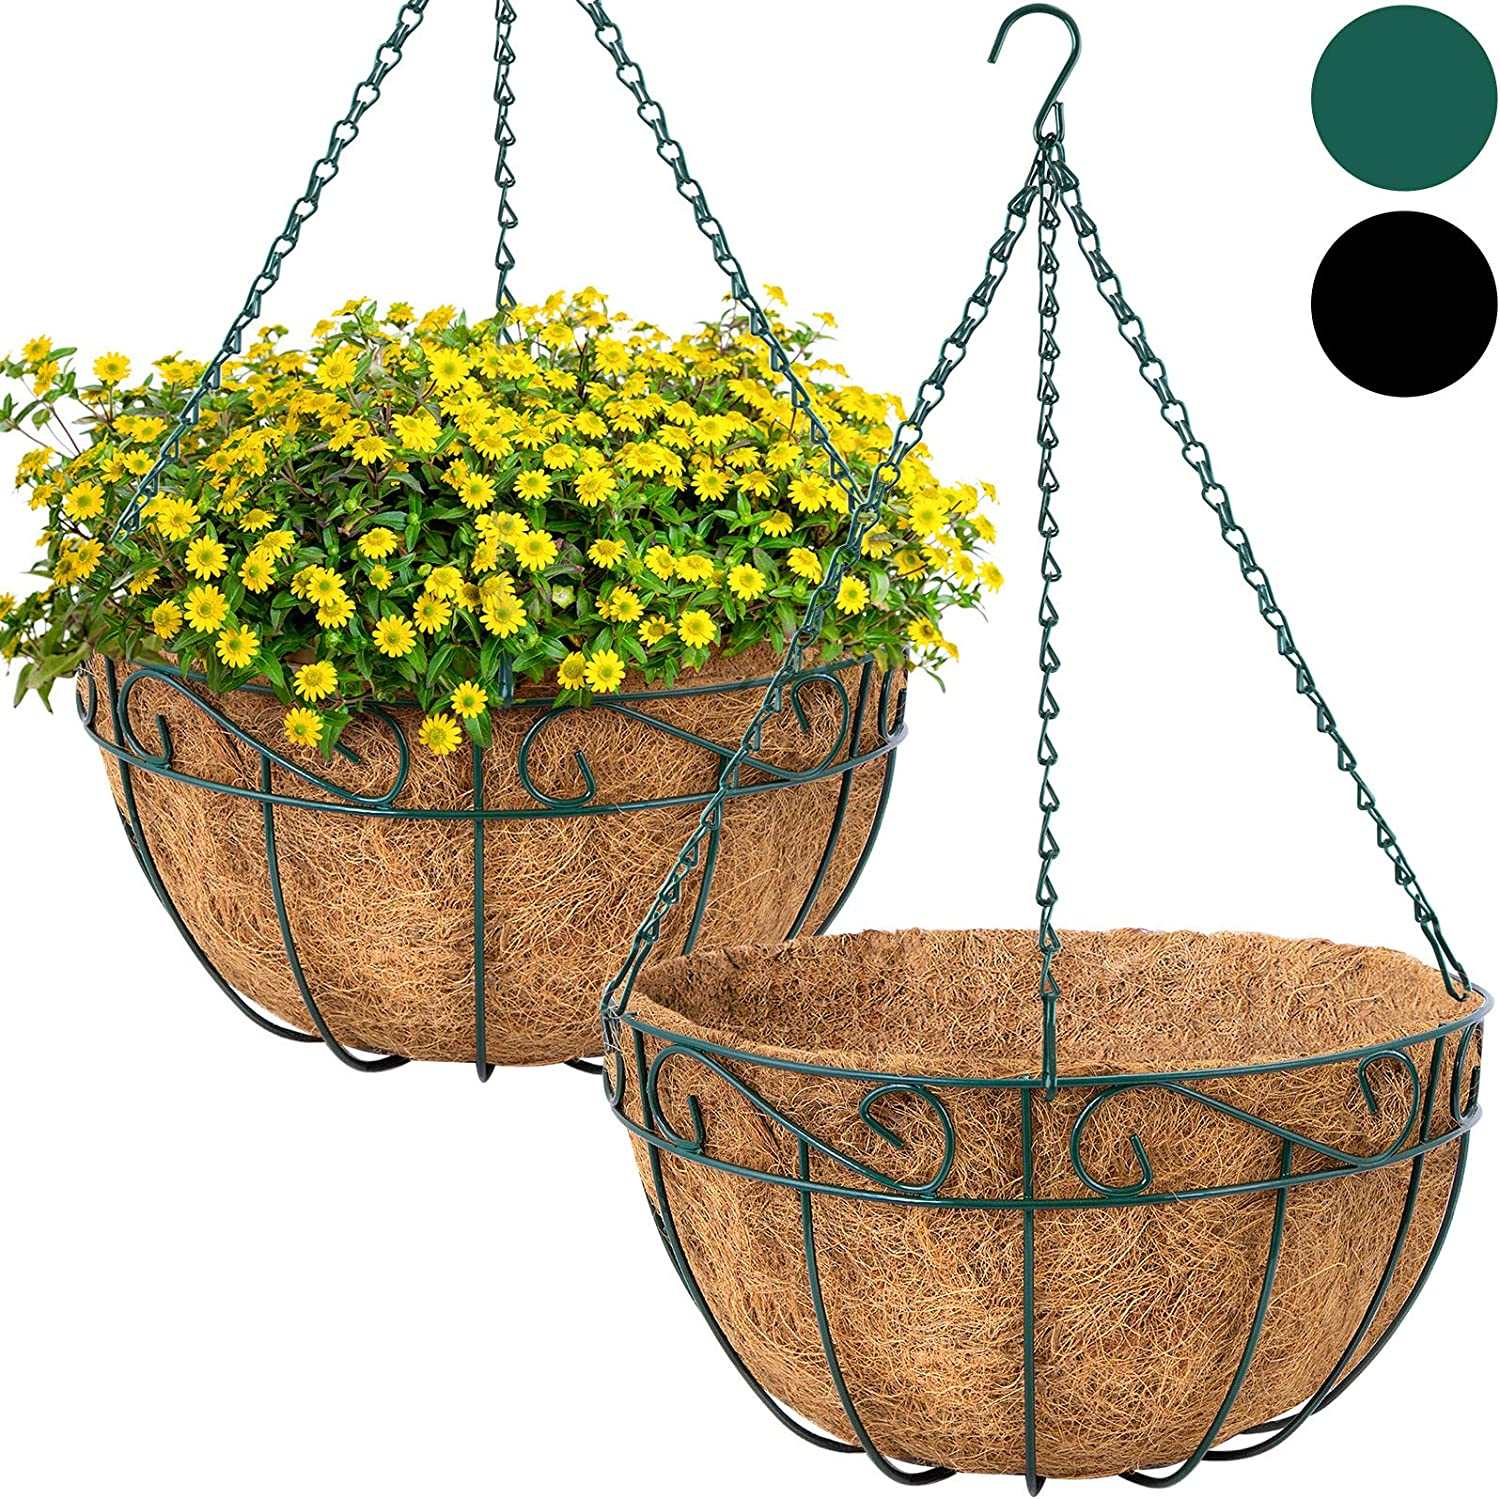 Amagabeli 4 Pack Hanging Plant Planter Baskets 12 Inch with Coco Coir Liner Round Metal Wire Plant Holder with Chain Porch Decor Flower Pots Hanger Garden Decoration Indoor Outdoor Green